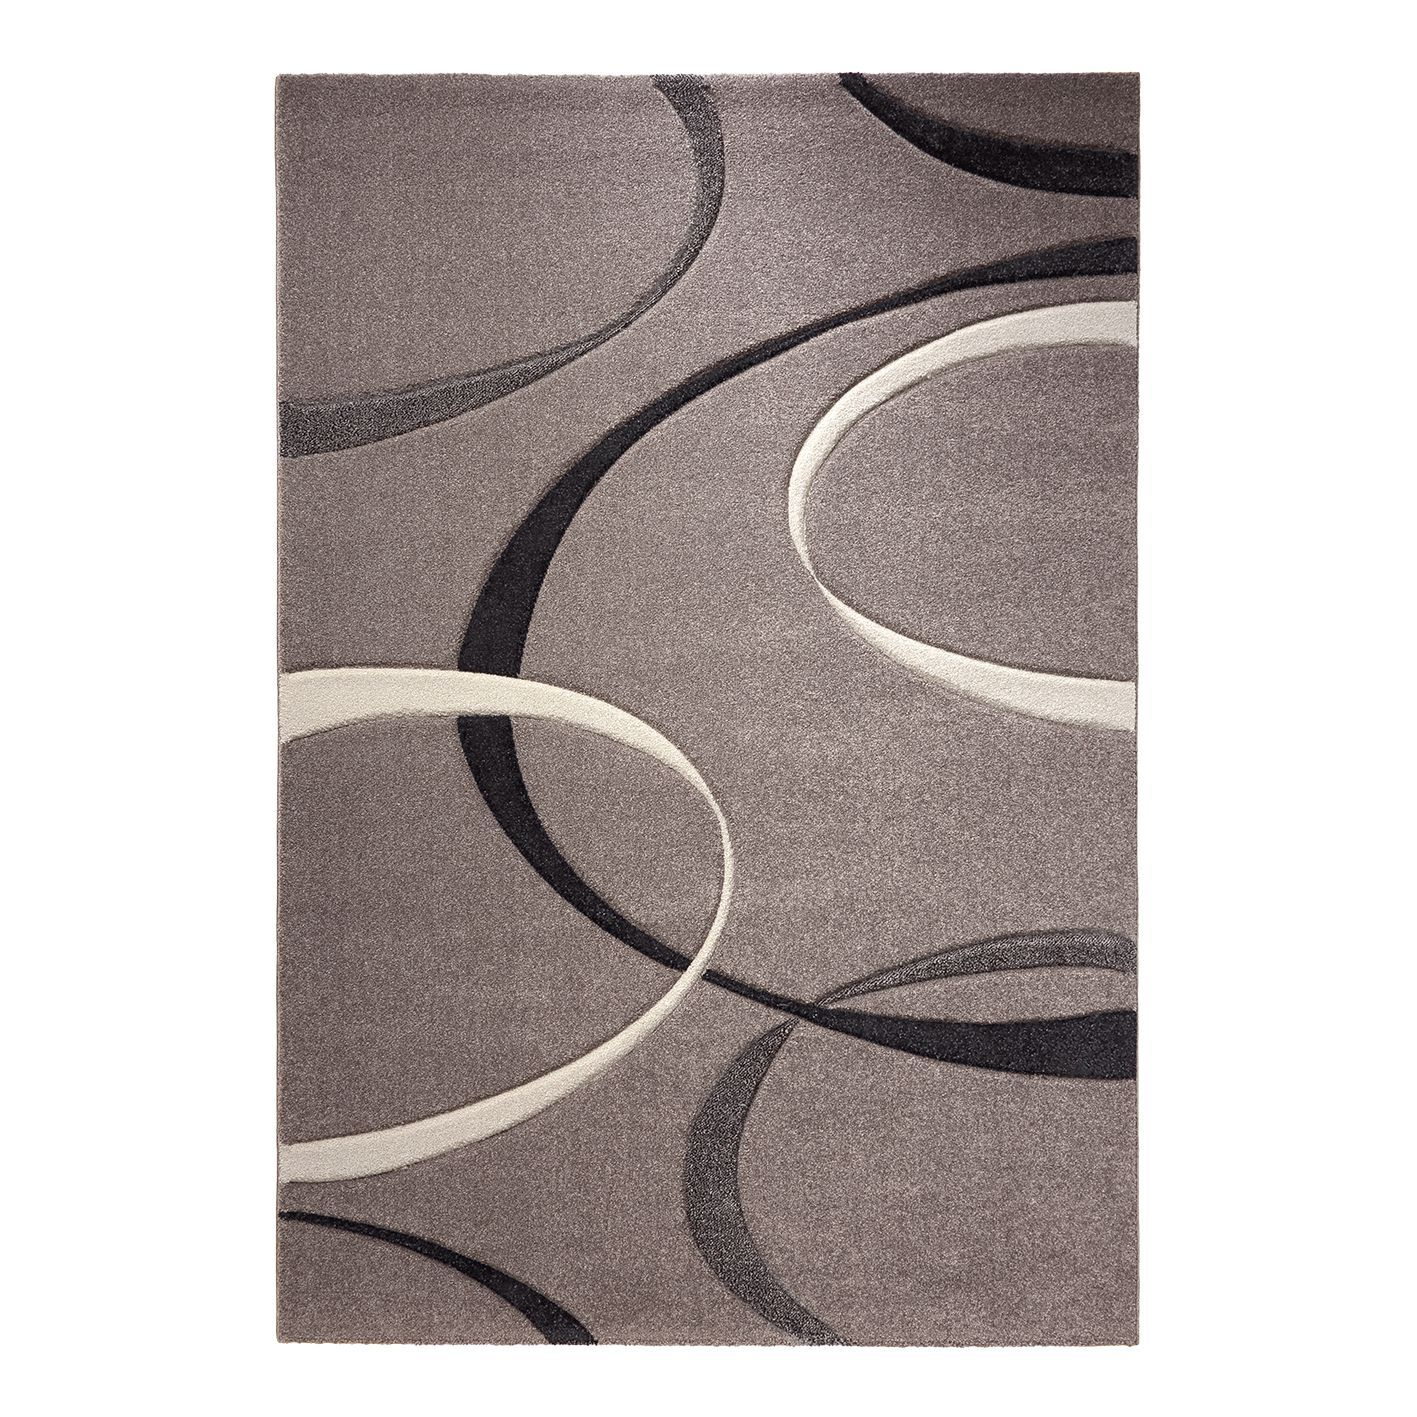 Tom Tailor Teppiche Pin By Ladendirekt On Teppiche Rugs Carpet Home Decor